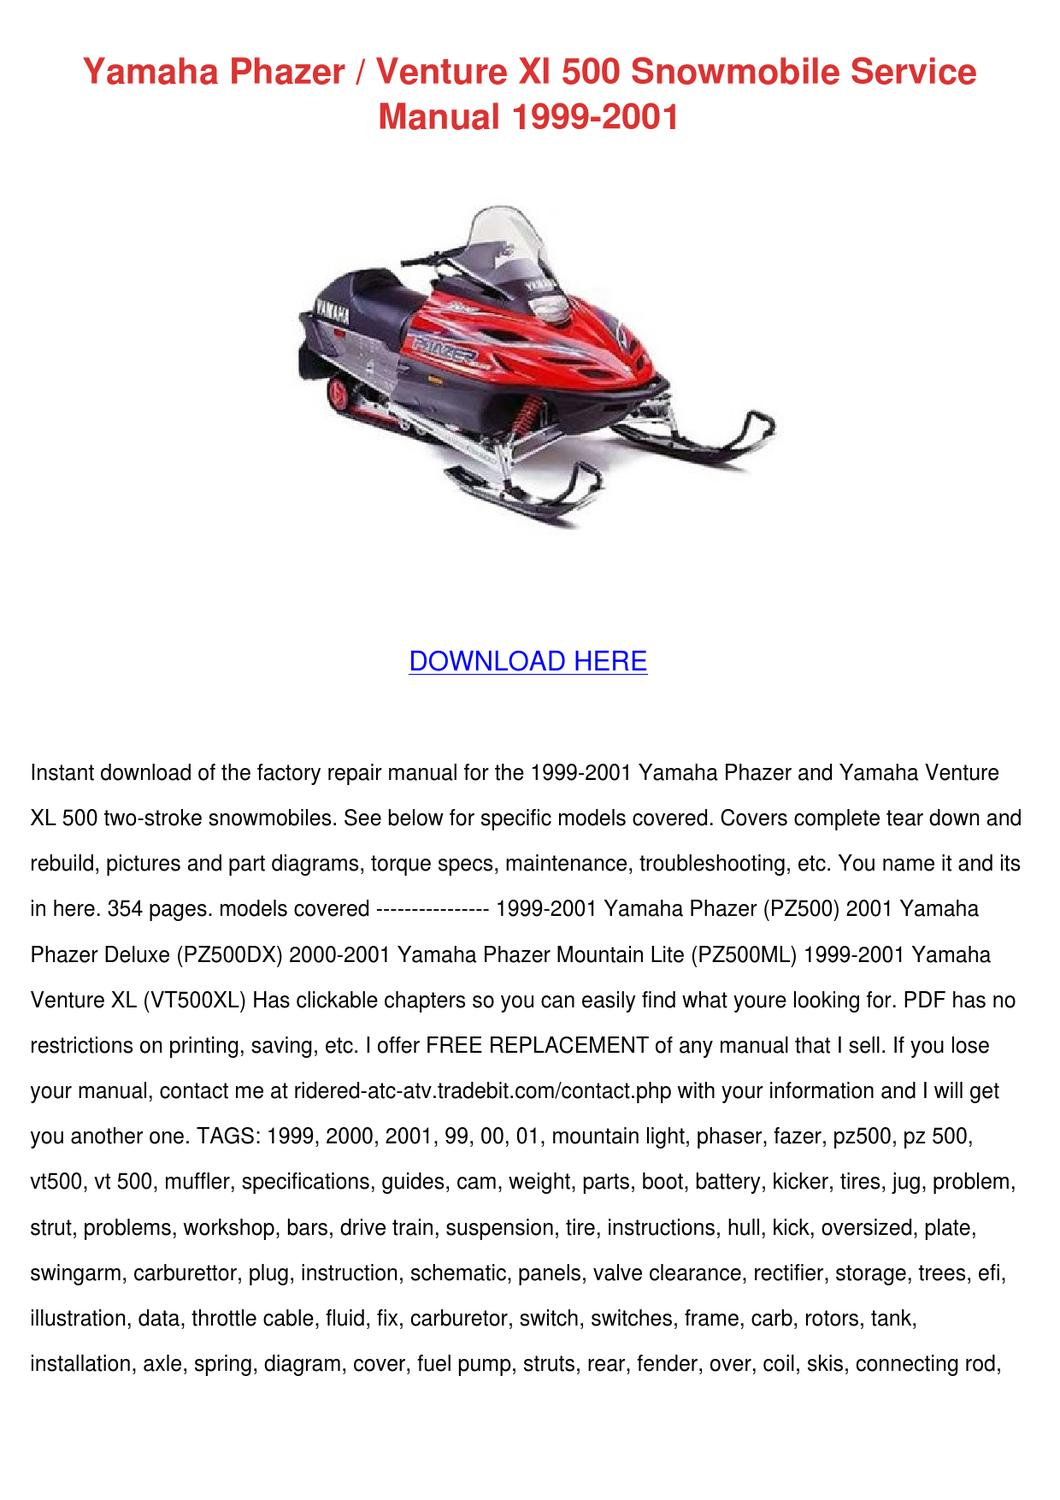 2001 Yamaha Phazer 500 Wiring Diagram Worksheet And Stroke Engine Carburetor Free Download Diagrams Venture Xl Snowmobile Servi By Meghan Capehart Issuu Rh Com Harness Generator